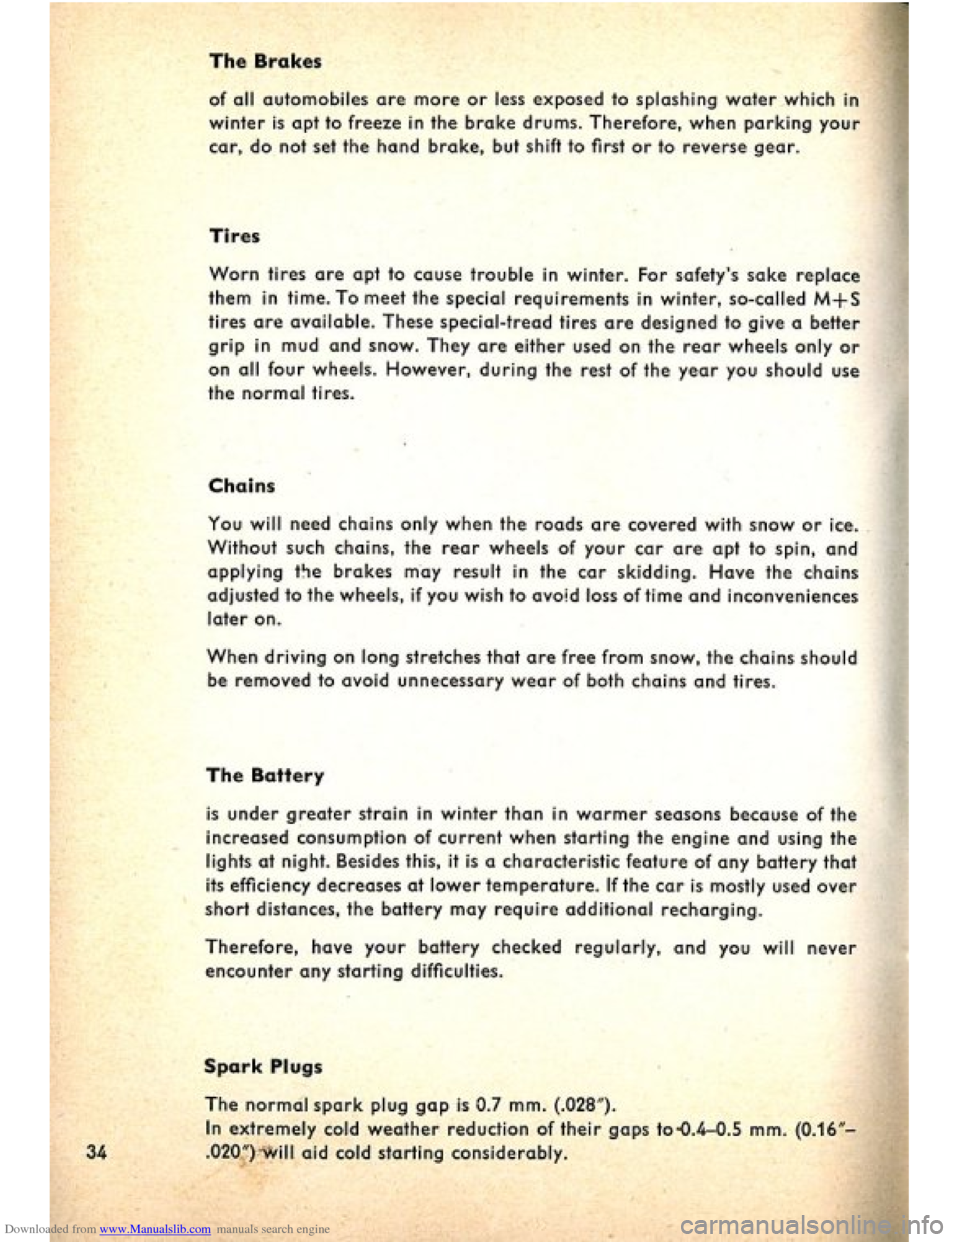 VOLKSWAGEN BEETLE 1960 1.G Owners Manual, Page 36